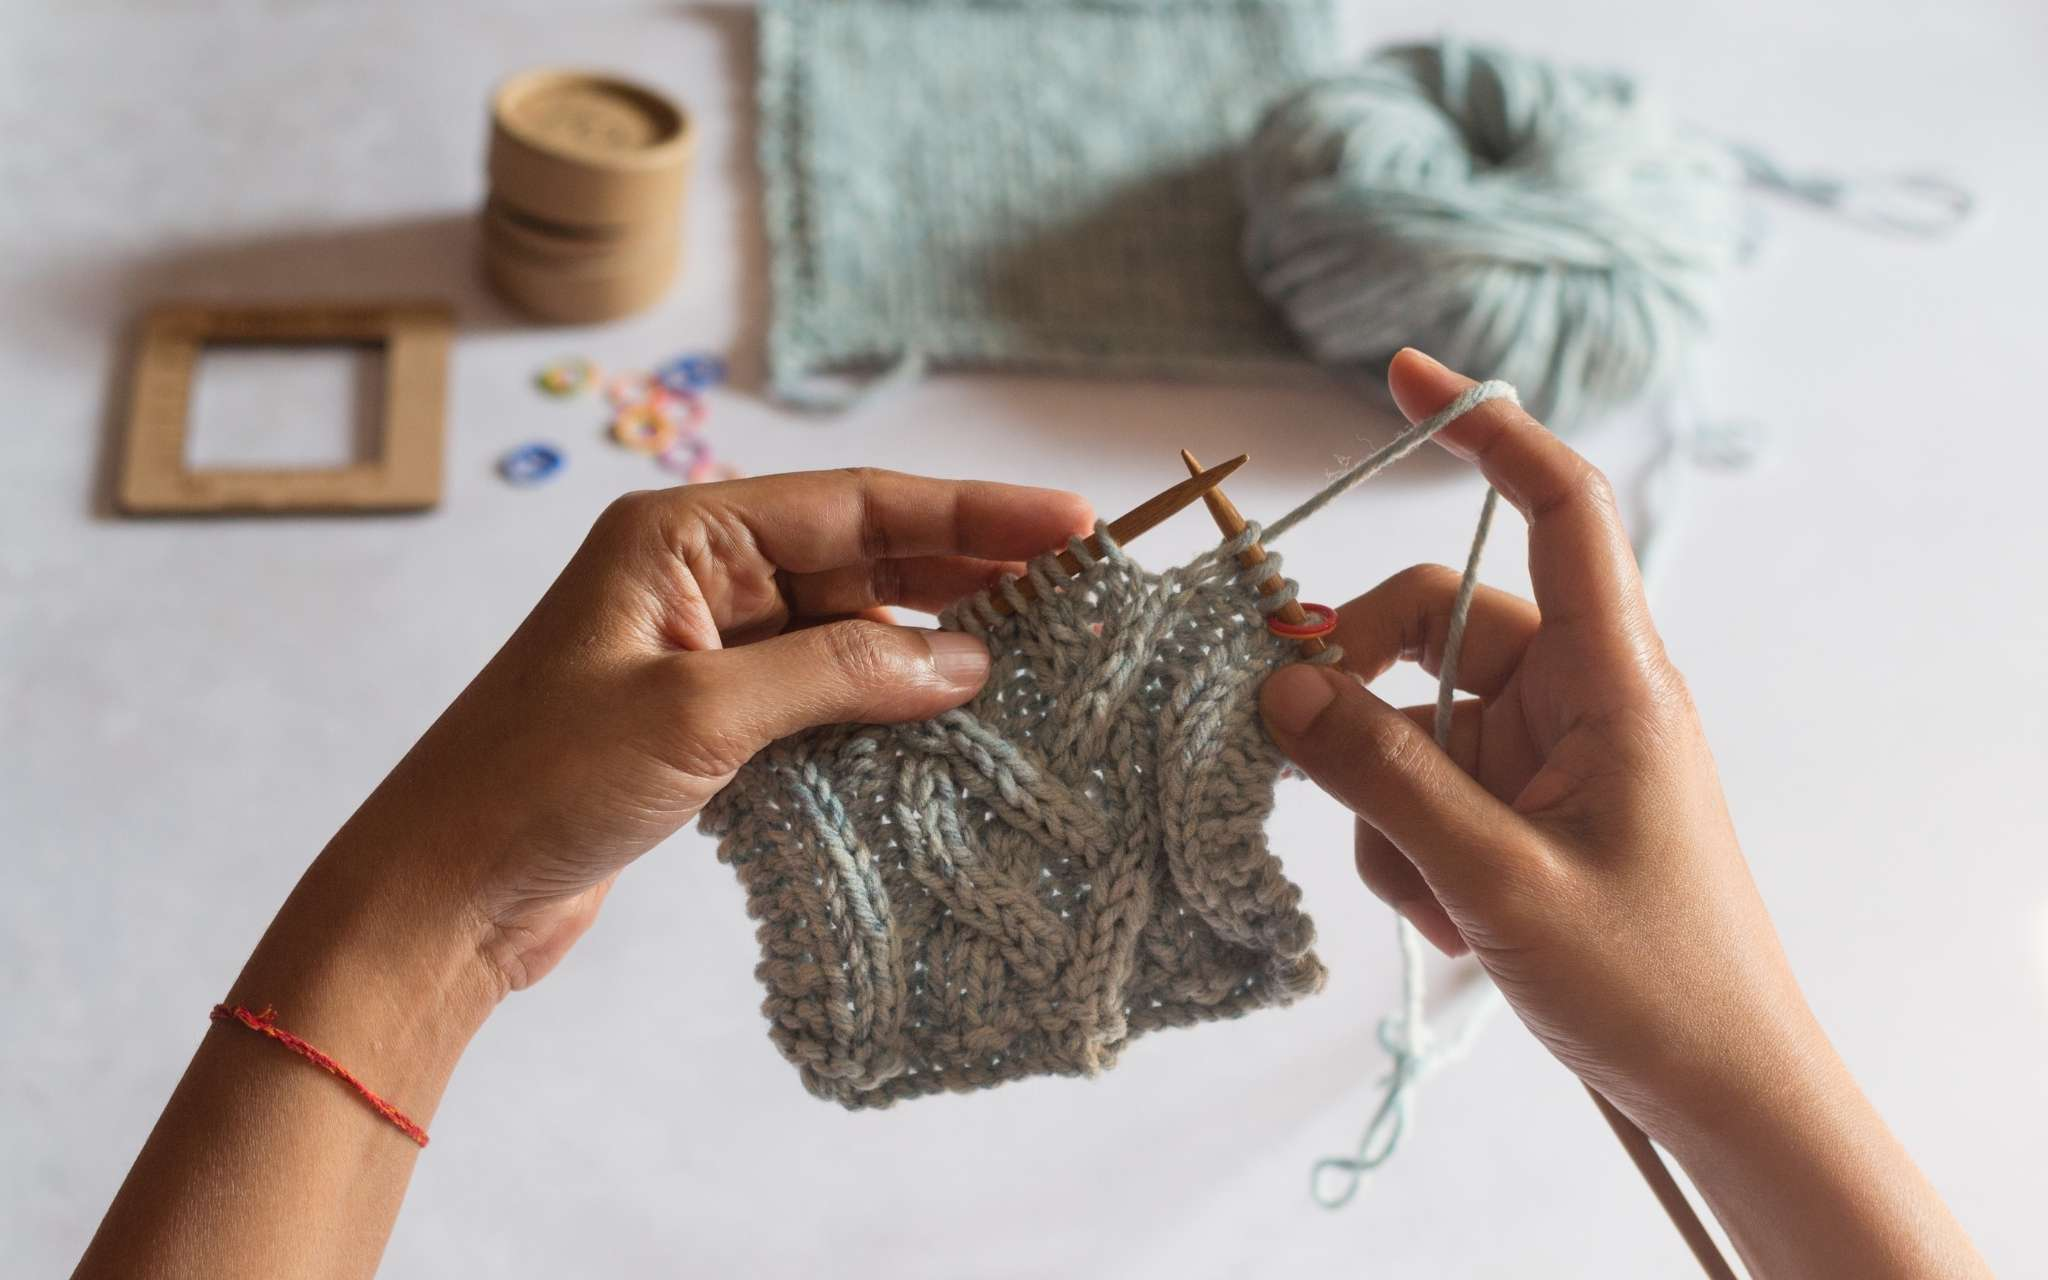 A woman of colour knits a pale blue cabled swatch on wooden needles. A completed swatch and measuring tools are on a flat surface at the top of the image.